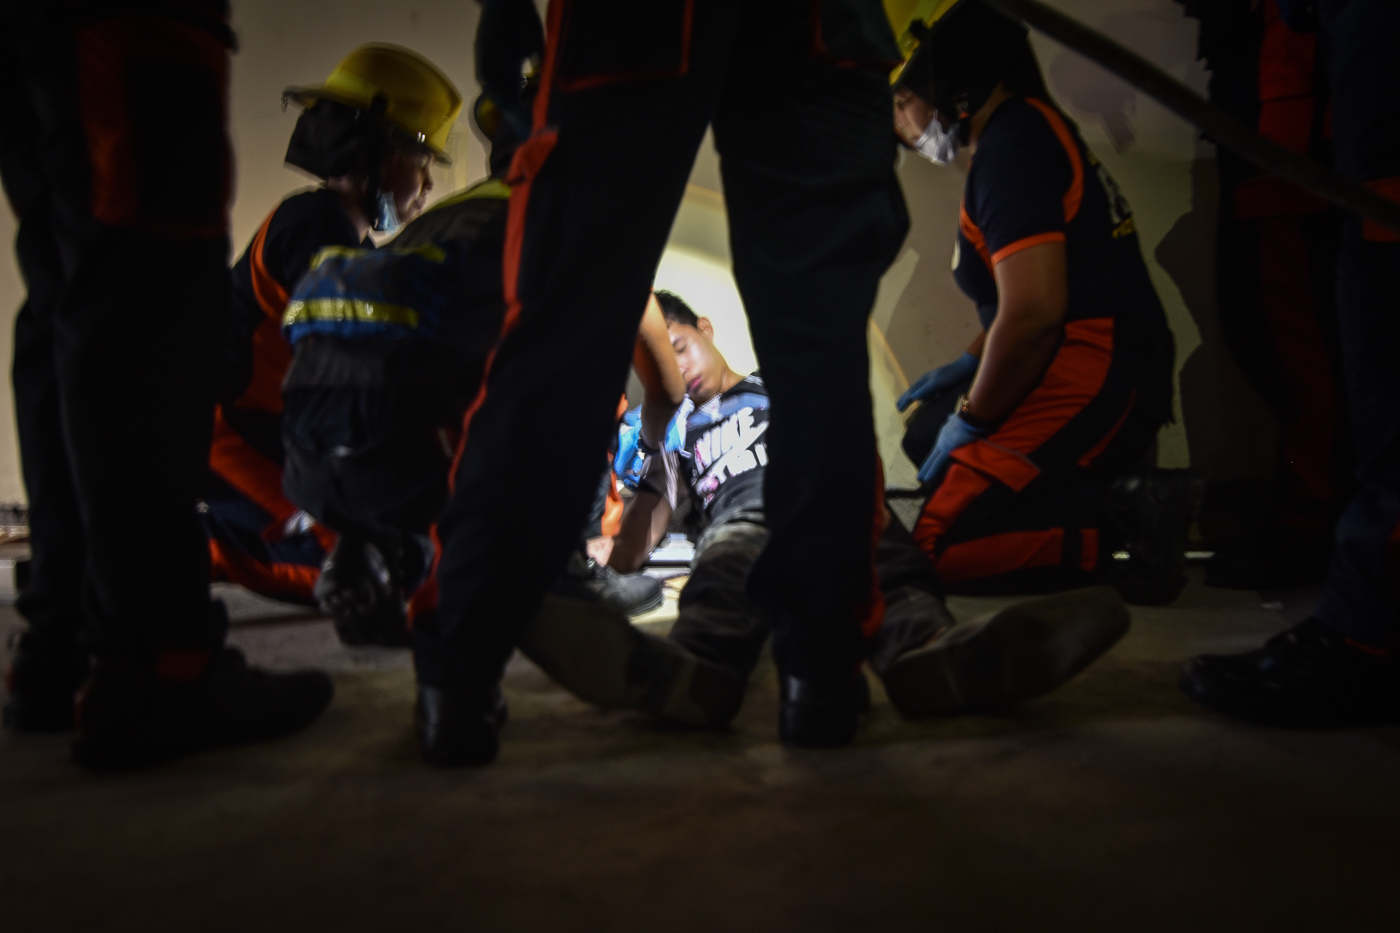 VICTIM. The Pasay City government simulates disaster and response drill during the #MMShakeDrill on July 14, 2017. Photo by LeAnne Jazul/Rappler